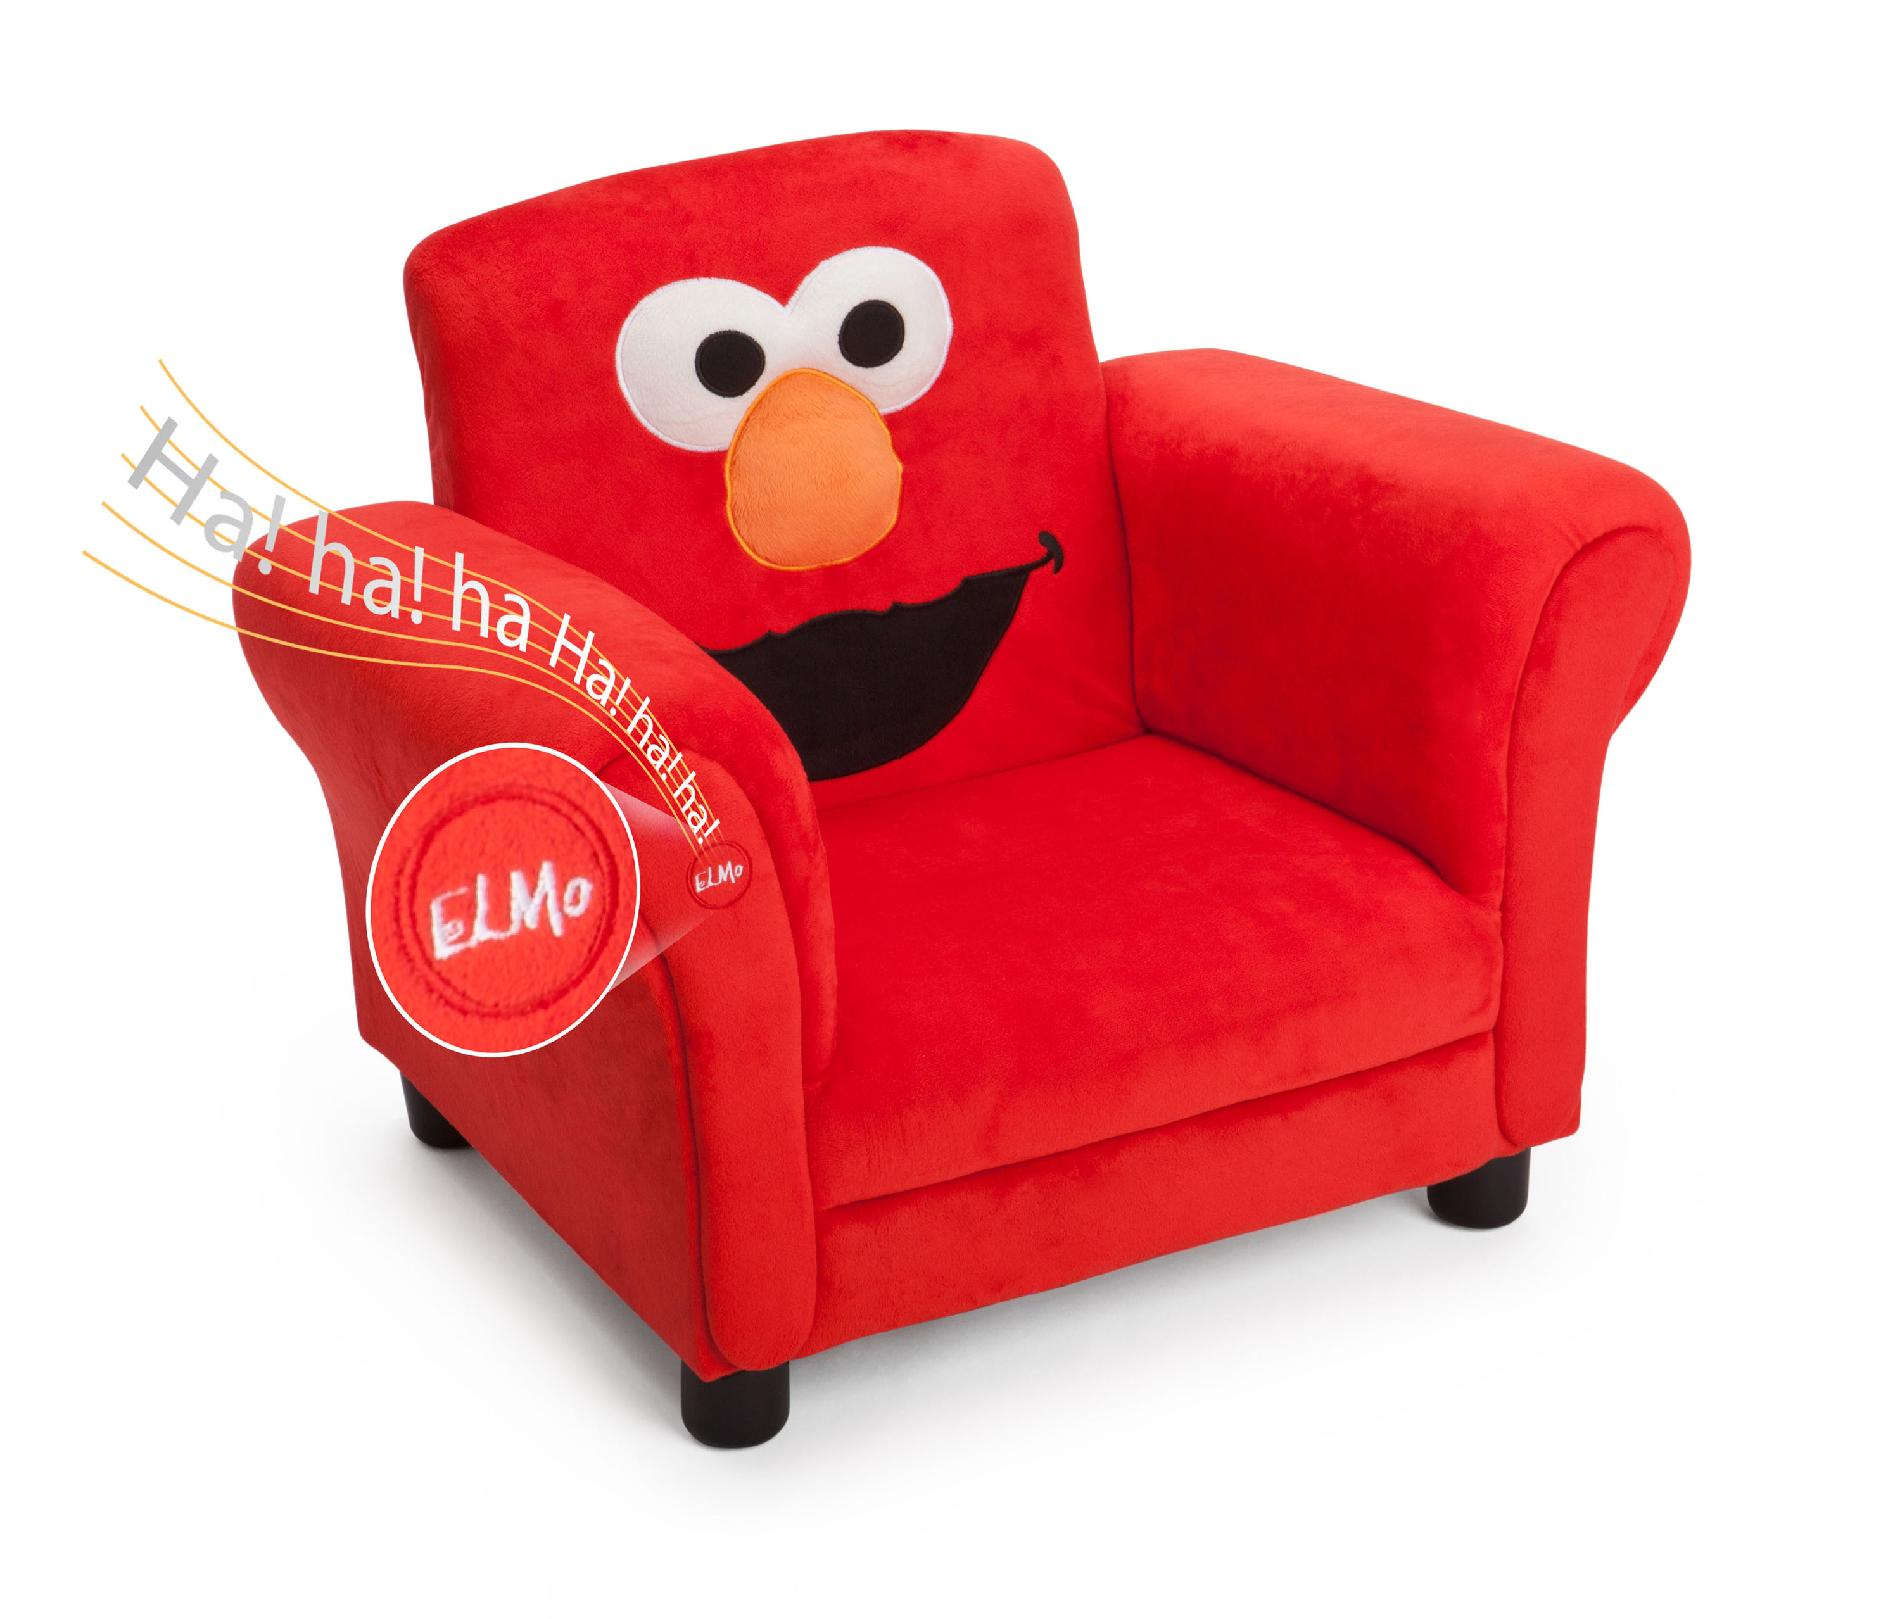 Toddler Chairs Delta Children Sesame Street Elmo Giggle Upholstered Chair